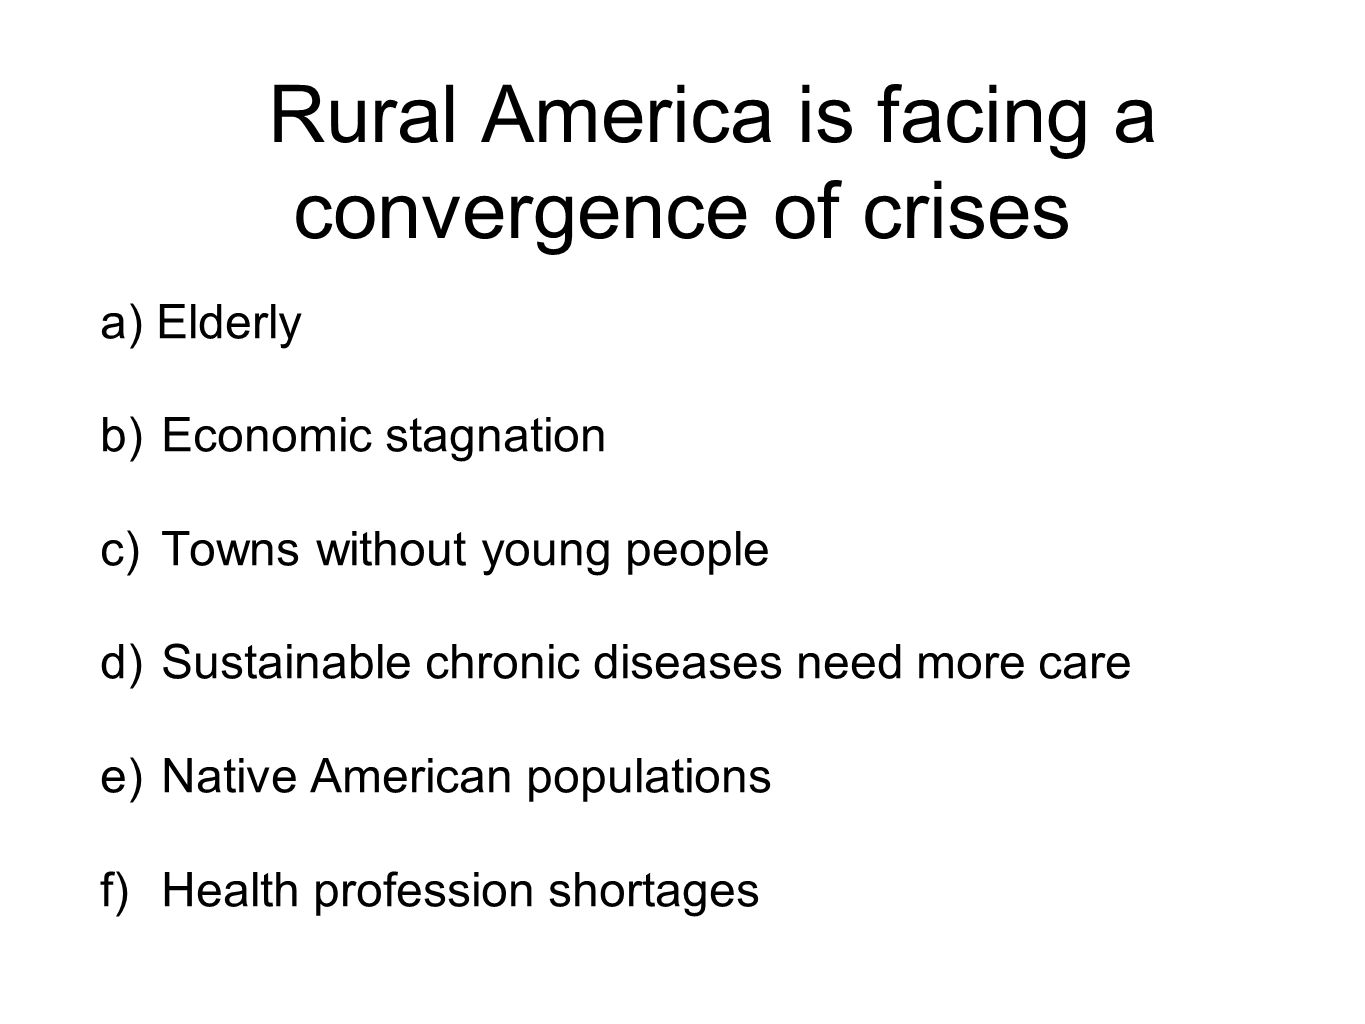 Rural America is facing a convergence of crises a) Elderly b)Economic stagnation c)Towns without young people d)Sustainable chronic diseases need more care e)Native American populations f)Health profession shortages